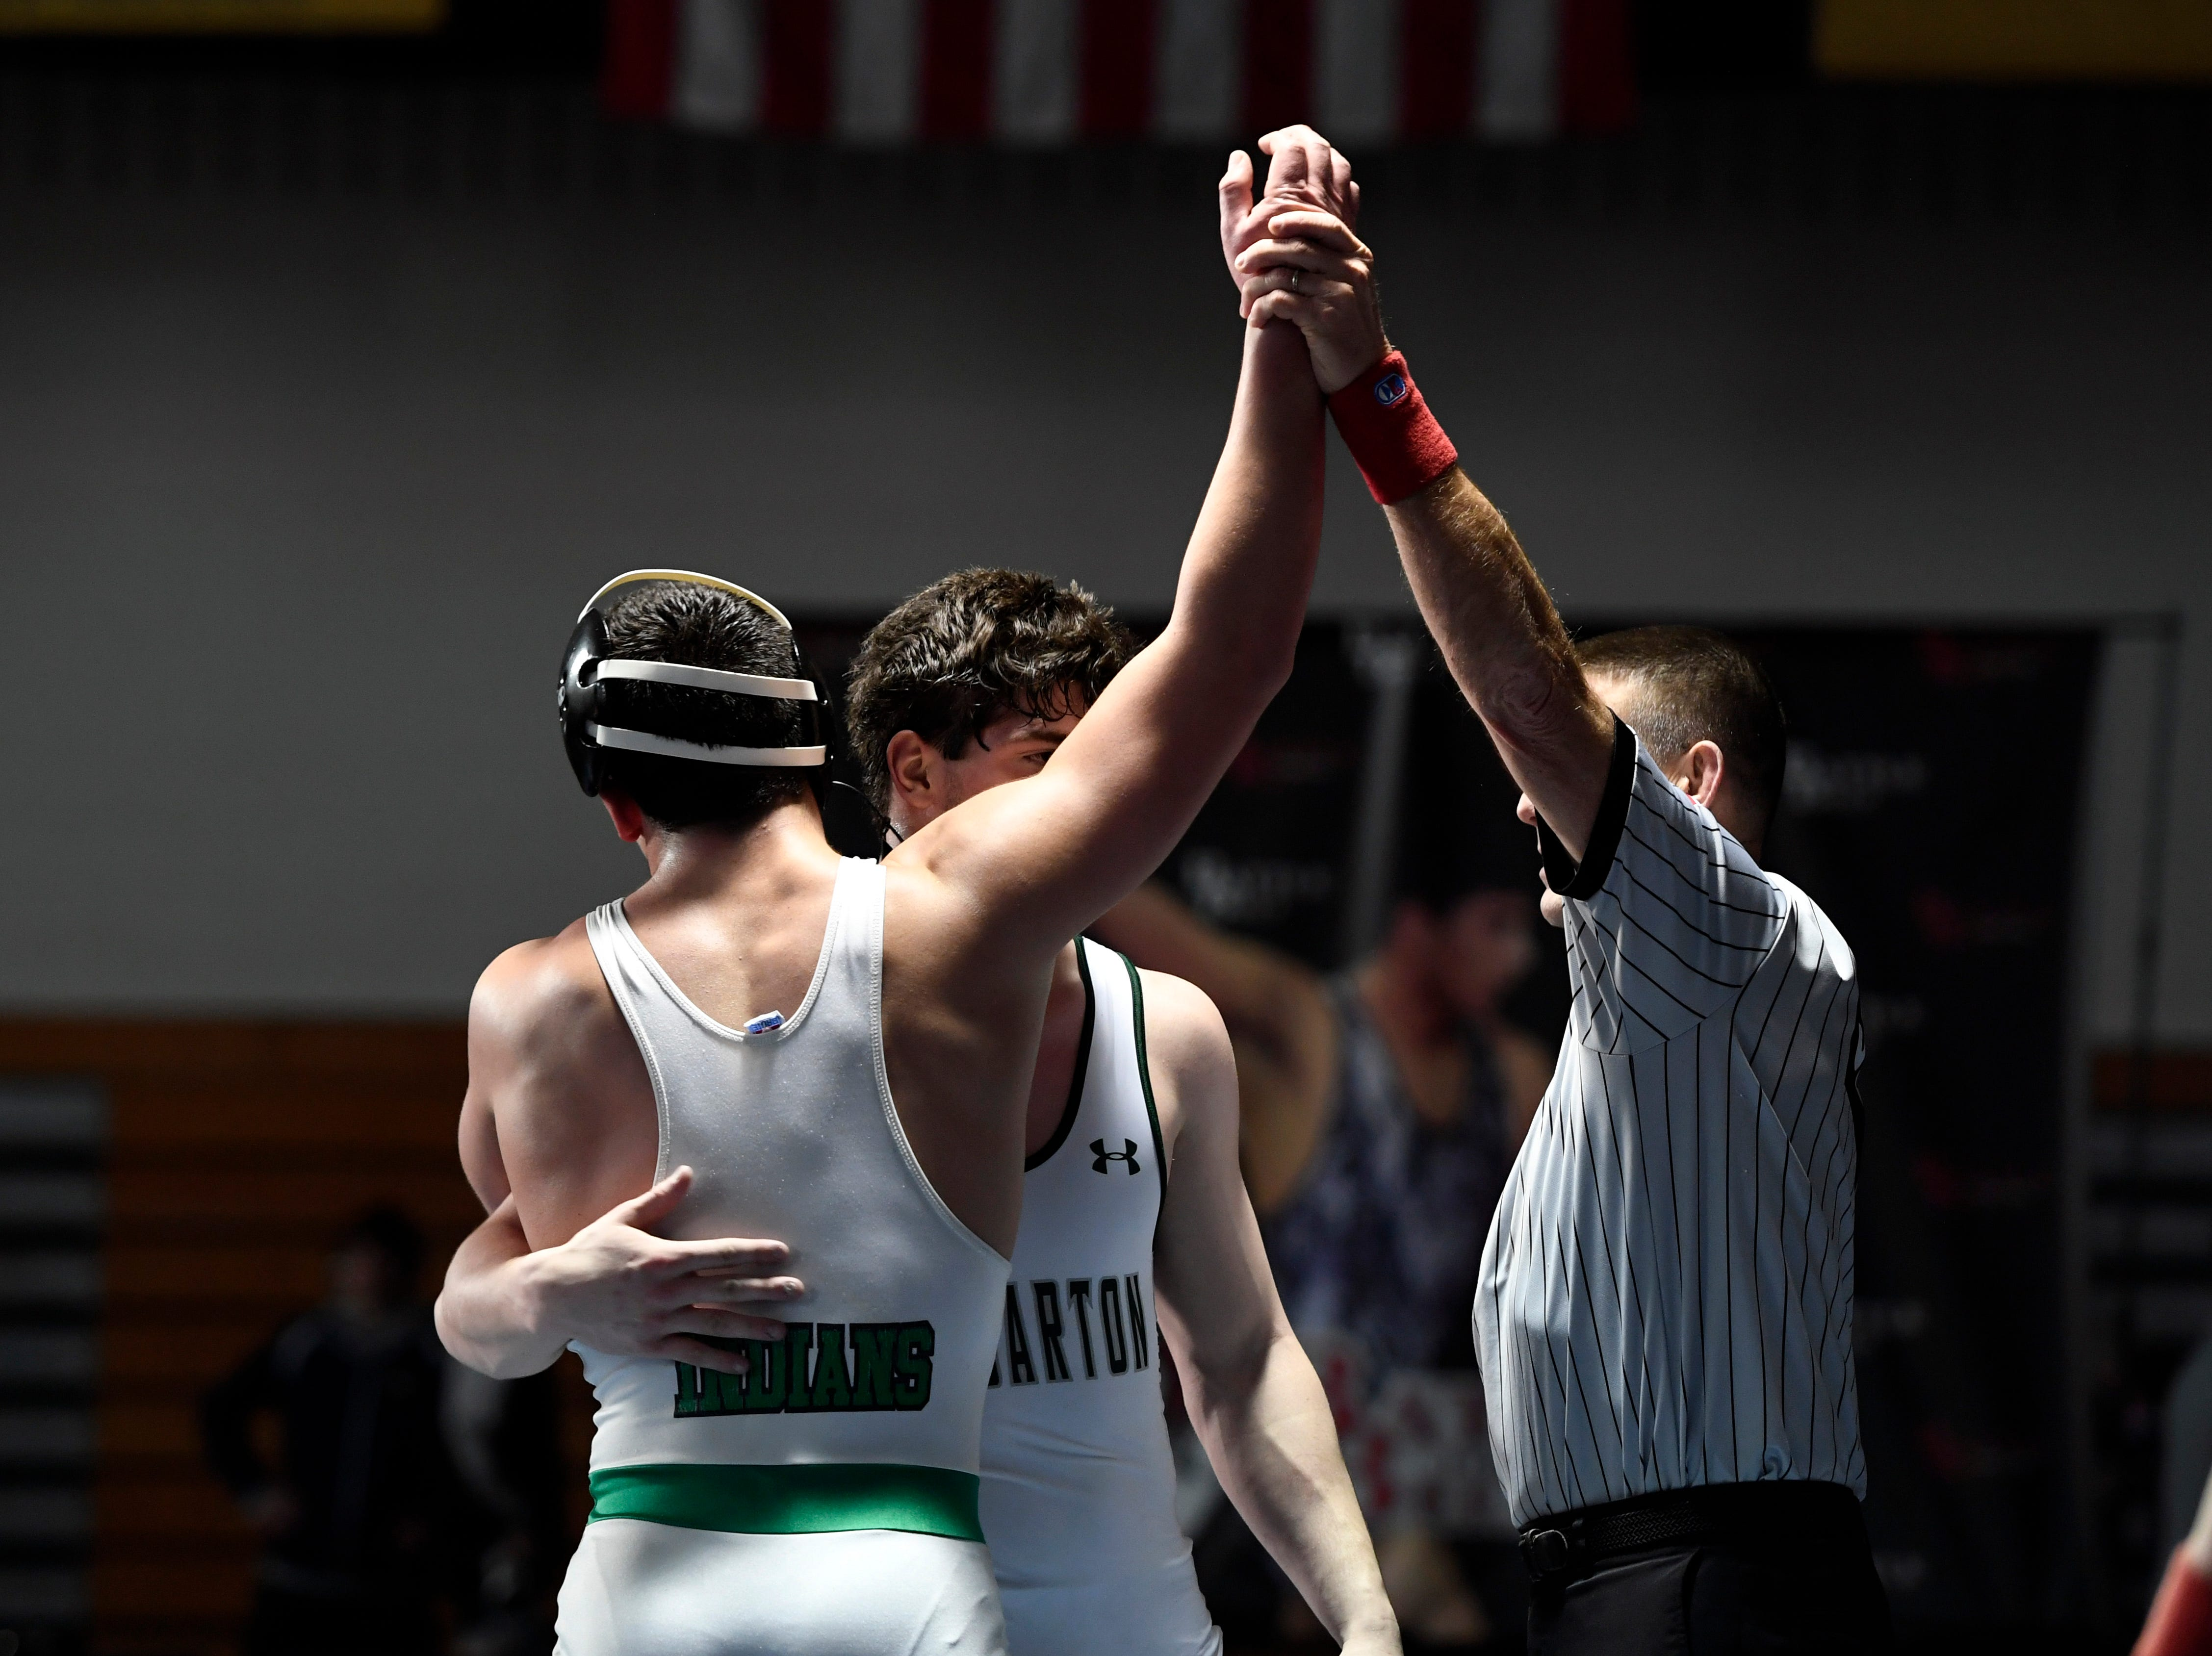 Tommy Chiellini of Pascack Valley, left, wins the 182-pound final as him and Kieran Calvetti of Delbarton hug during the Sam Cali Battle for the Belt final on Sunday, Jan. 6, 2019, in West Orange.